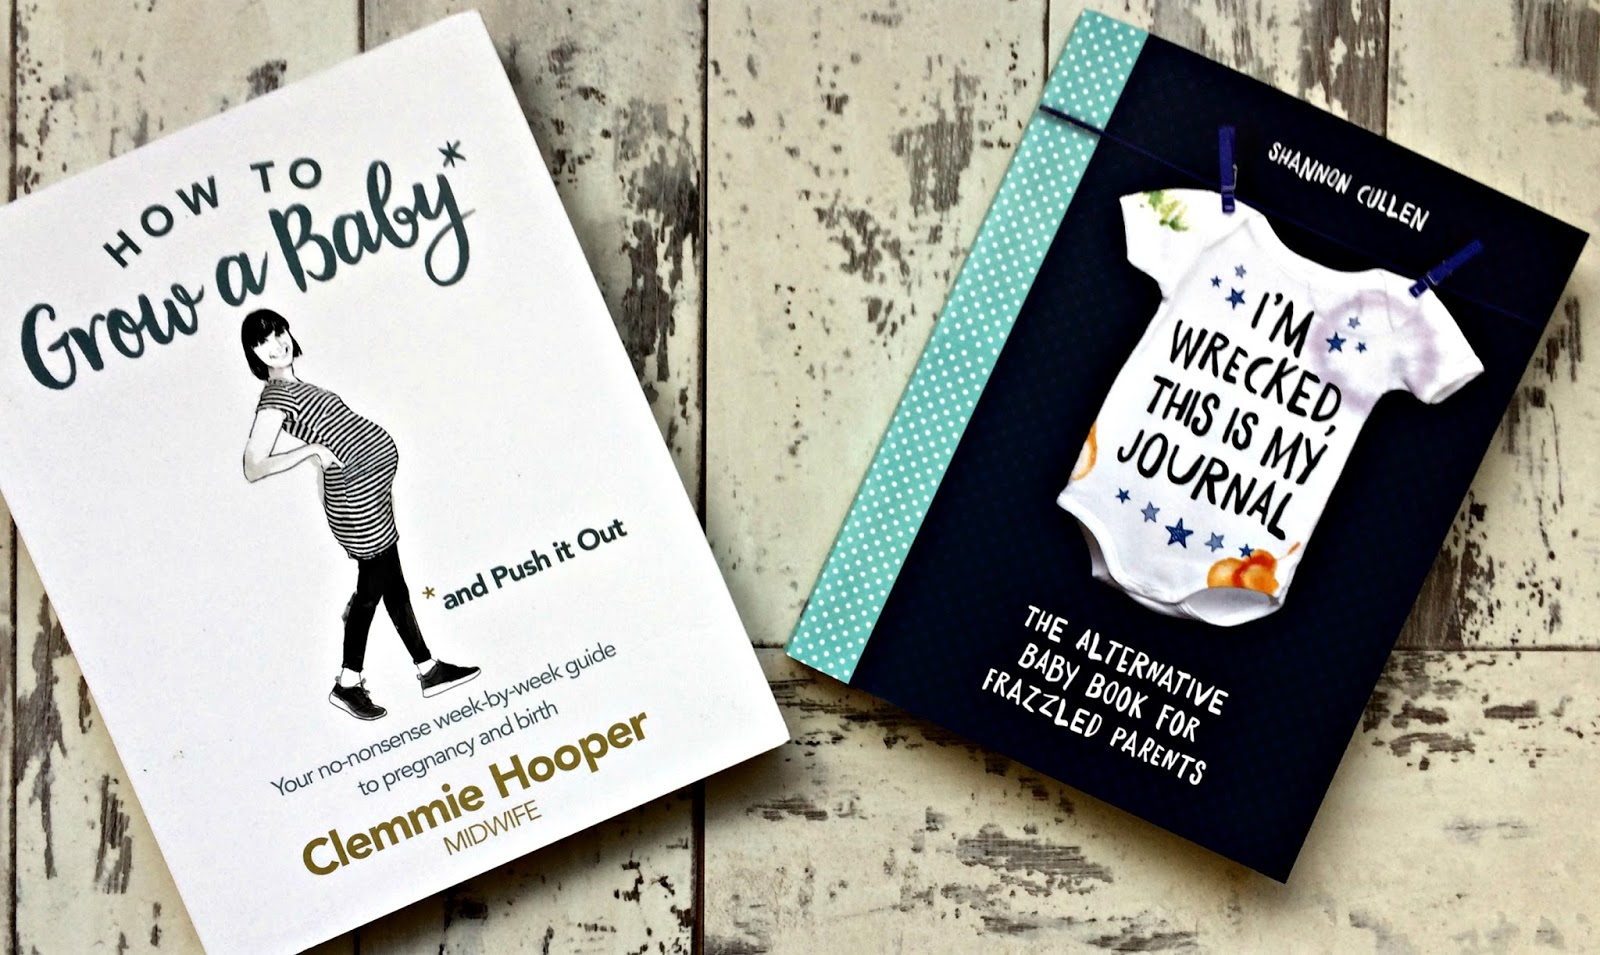 How To Grow A Baby by Clemmie Hooper & I'm Wrecked This Is My Journal by Shannon Cullen book front covers